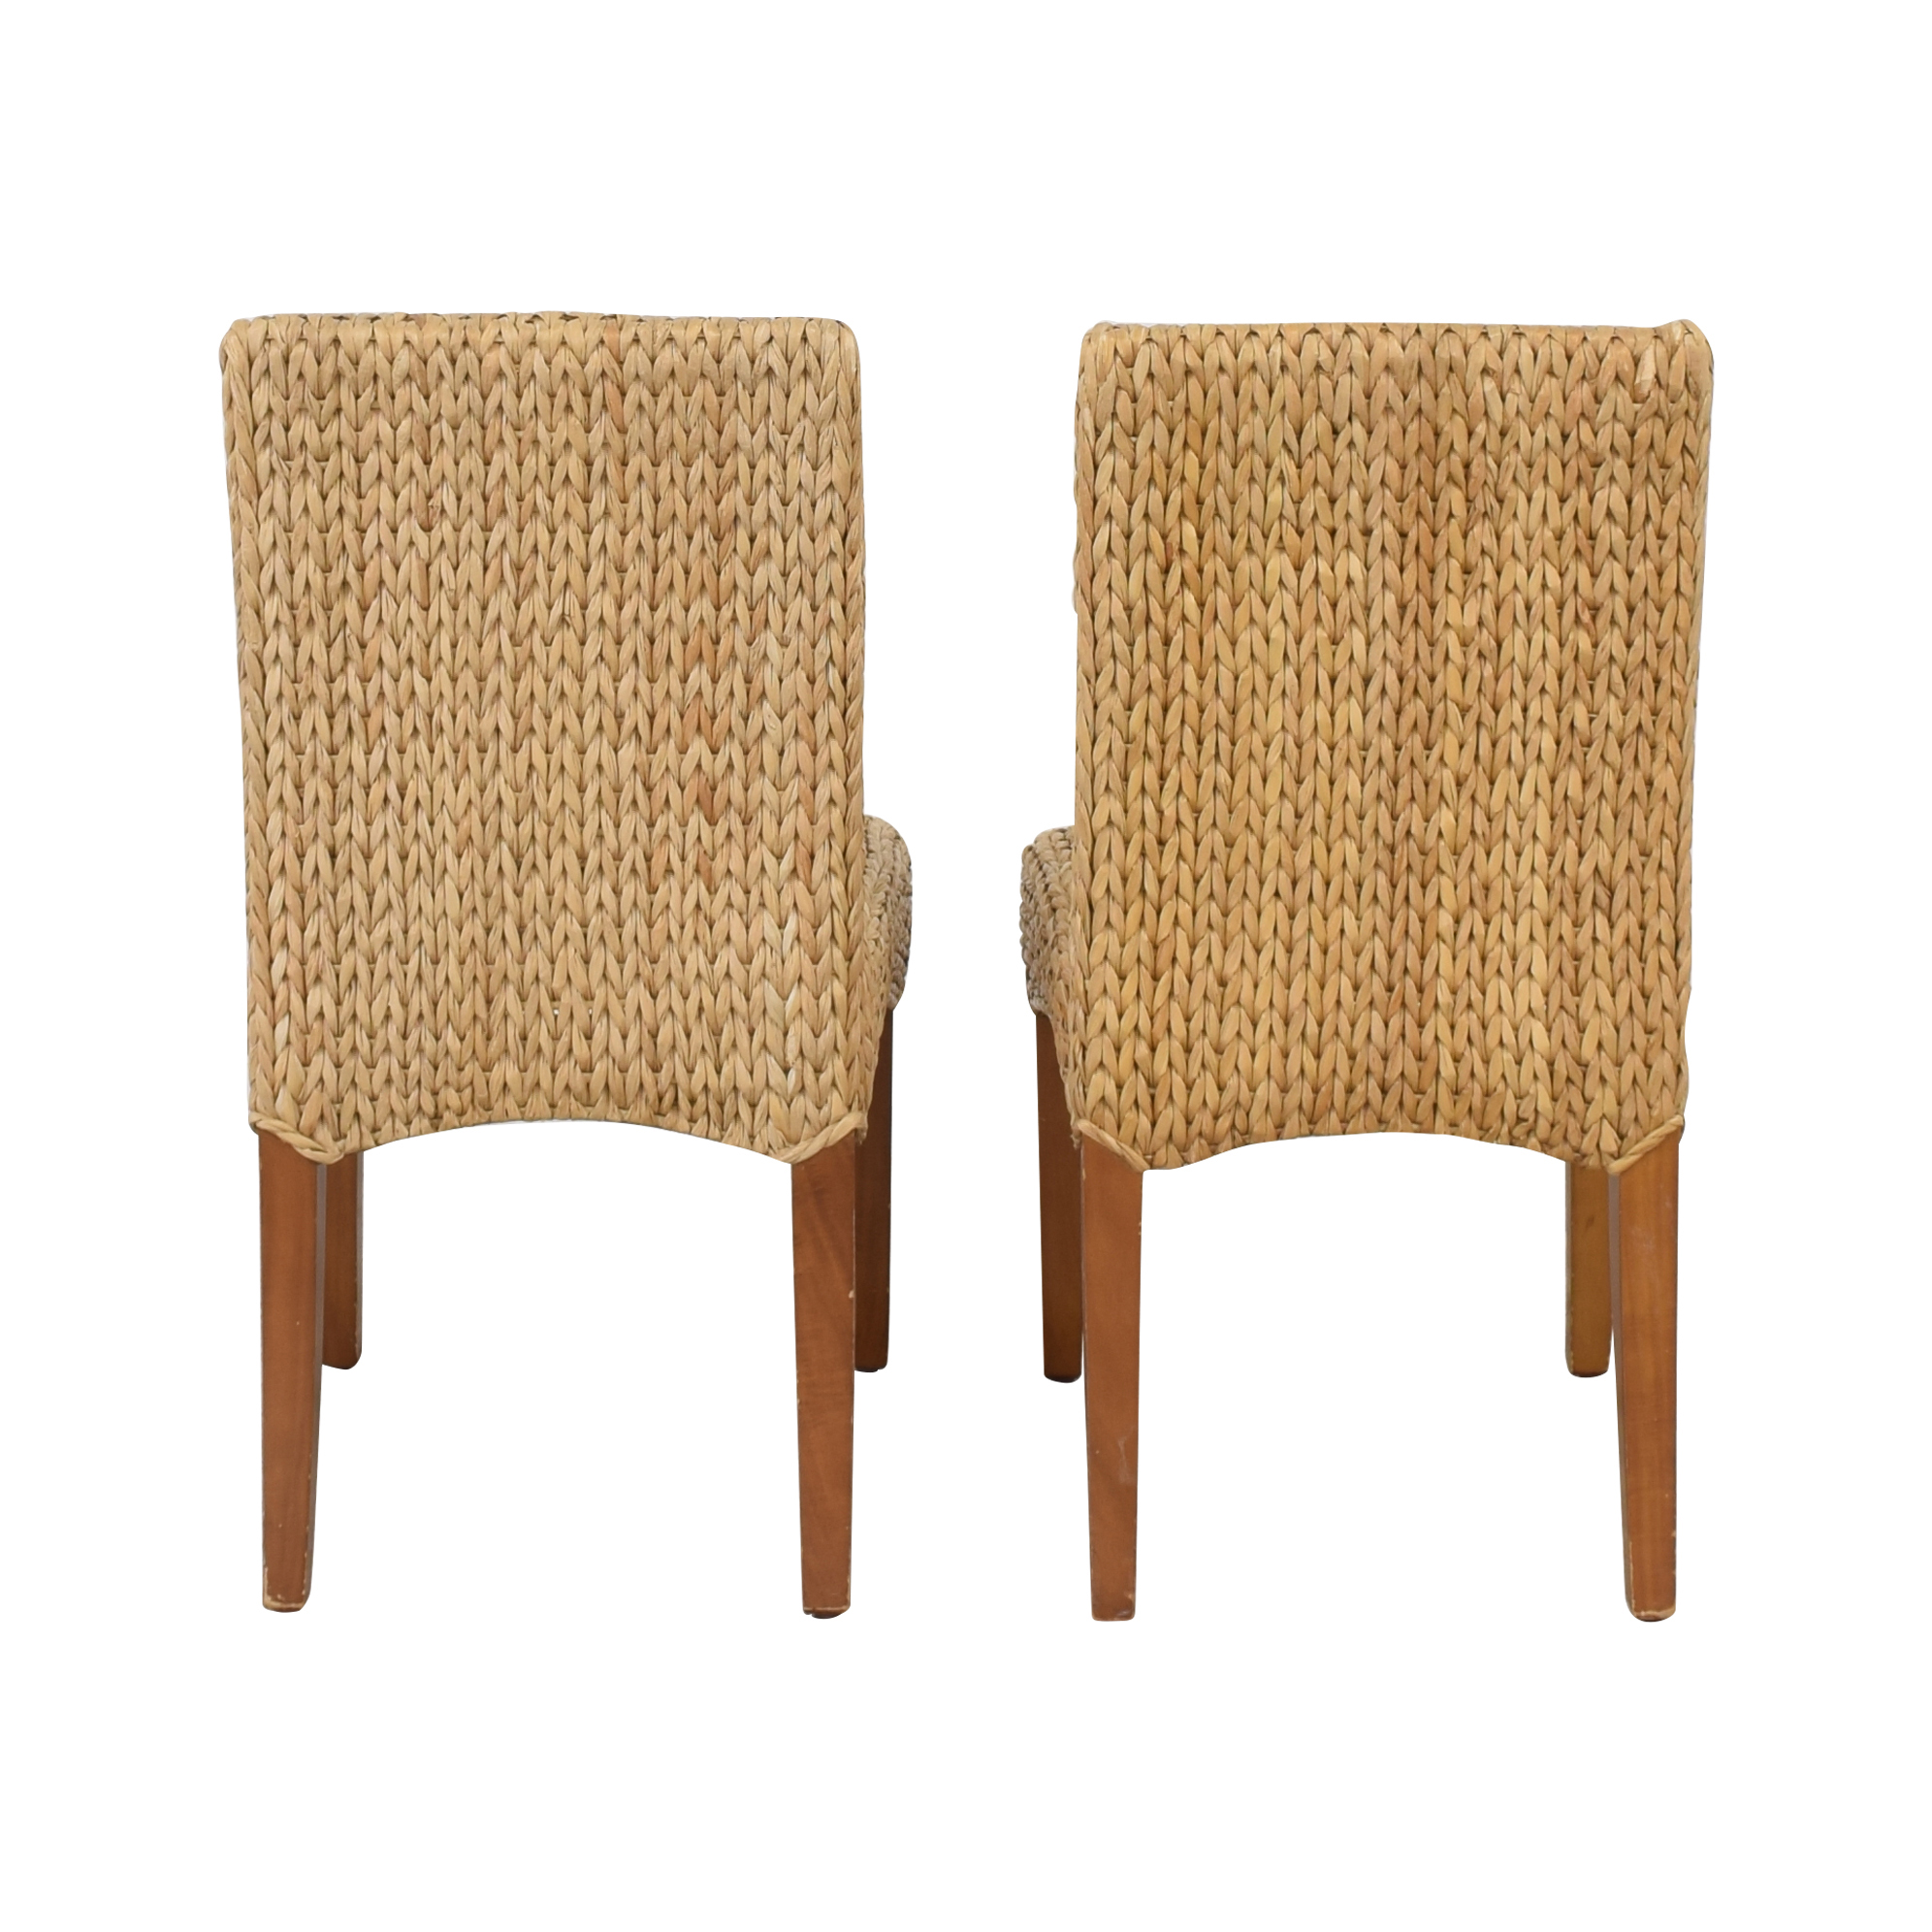 Pottery Barn Pottery Barn Seagrass Dining Side Chairs discount